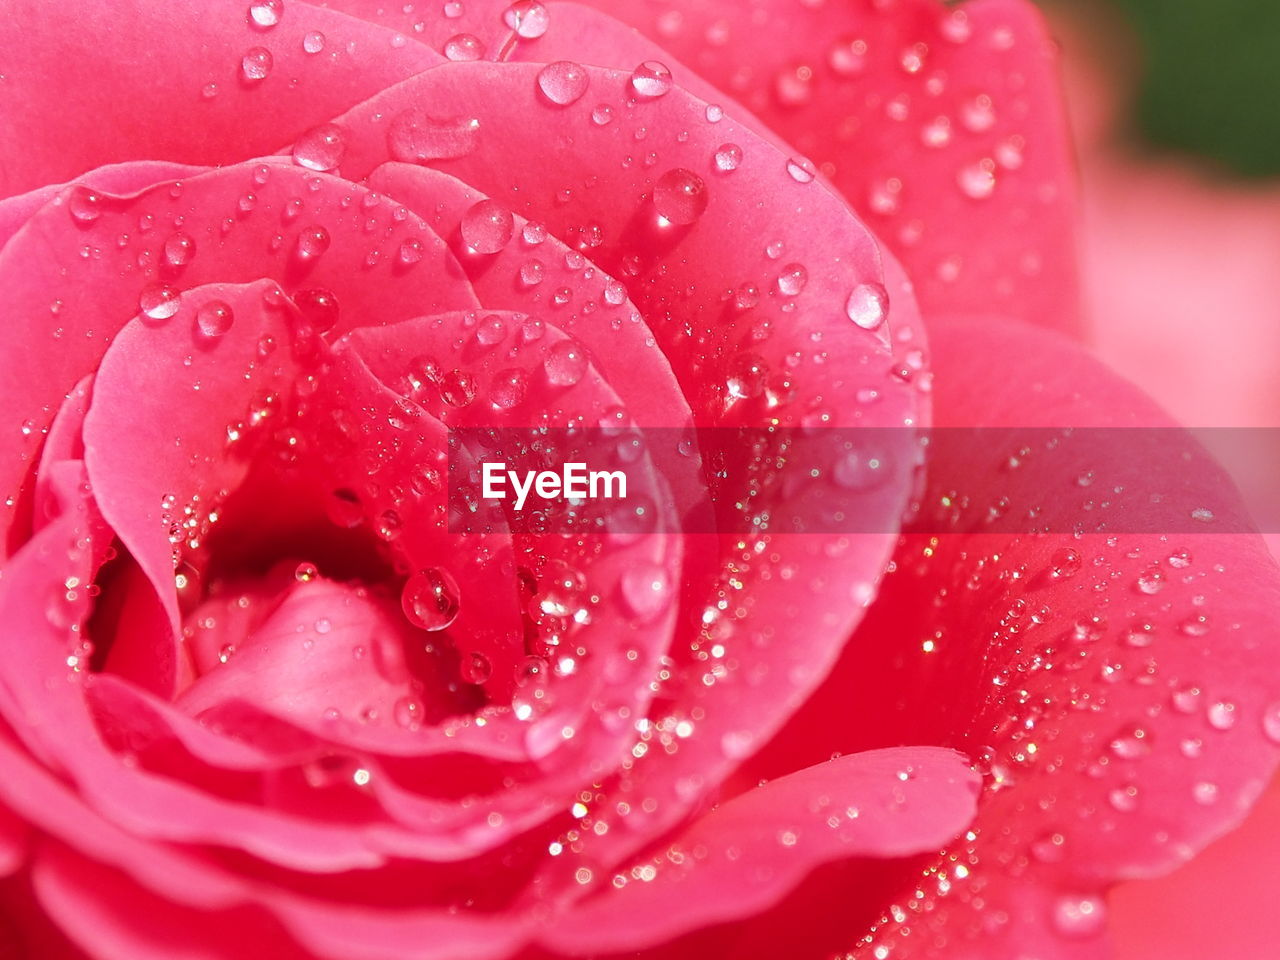 CLOSE-UP OF WET PINK ROSE IN RAIN